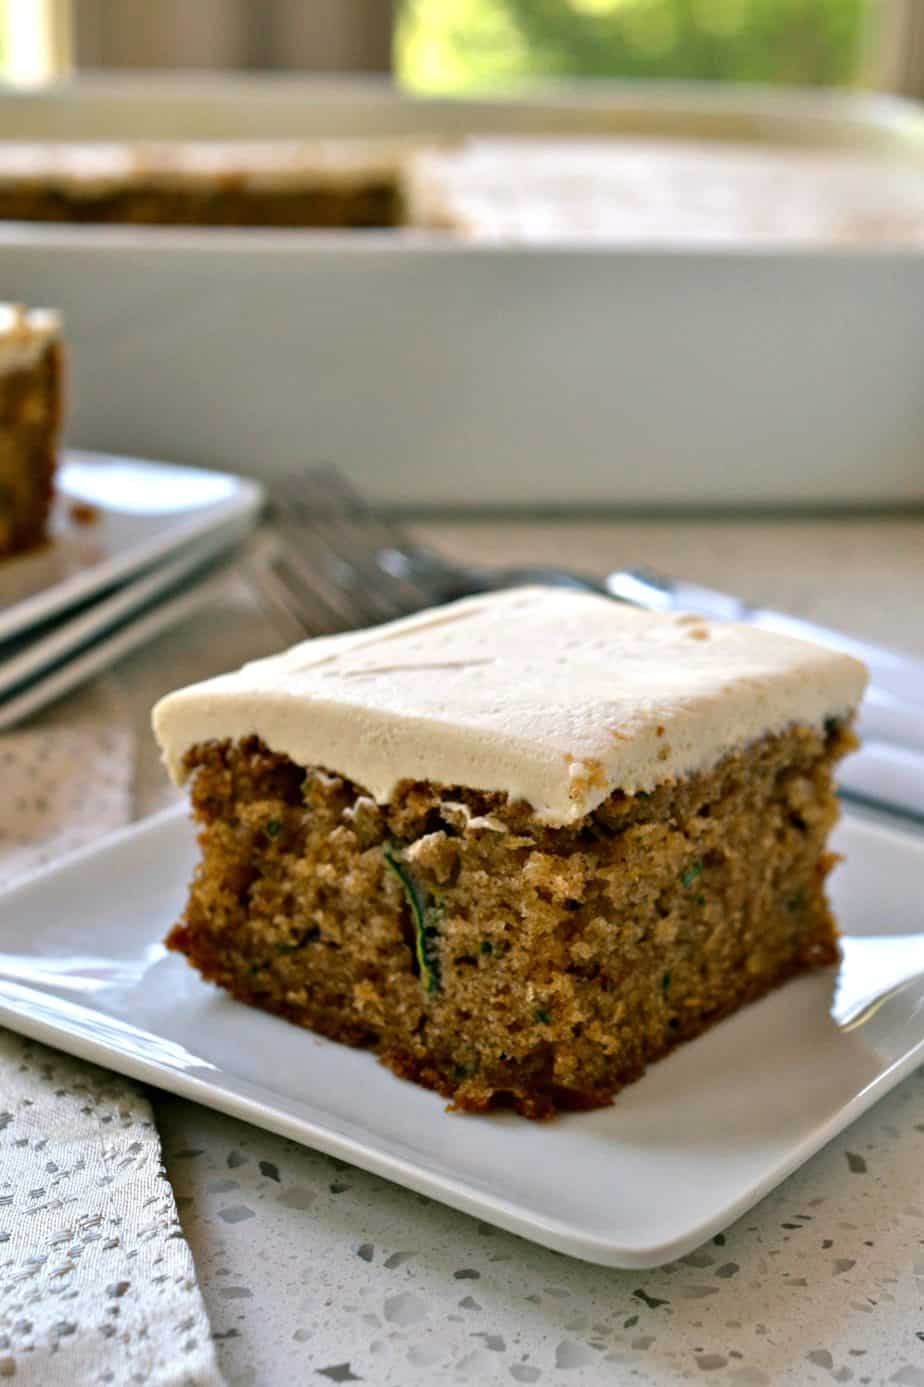 topped with an easy four ingredient brown sugar cream cheese frosting.